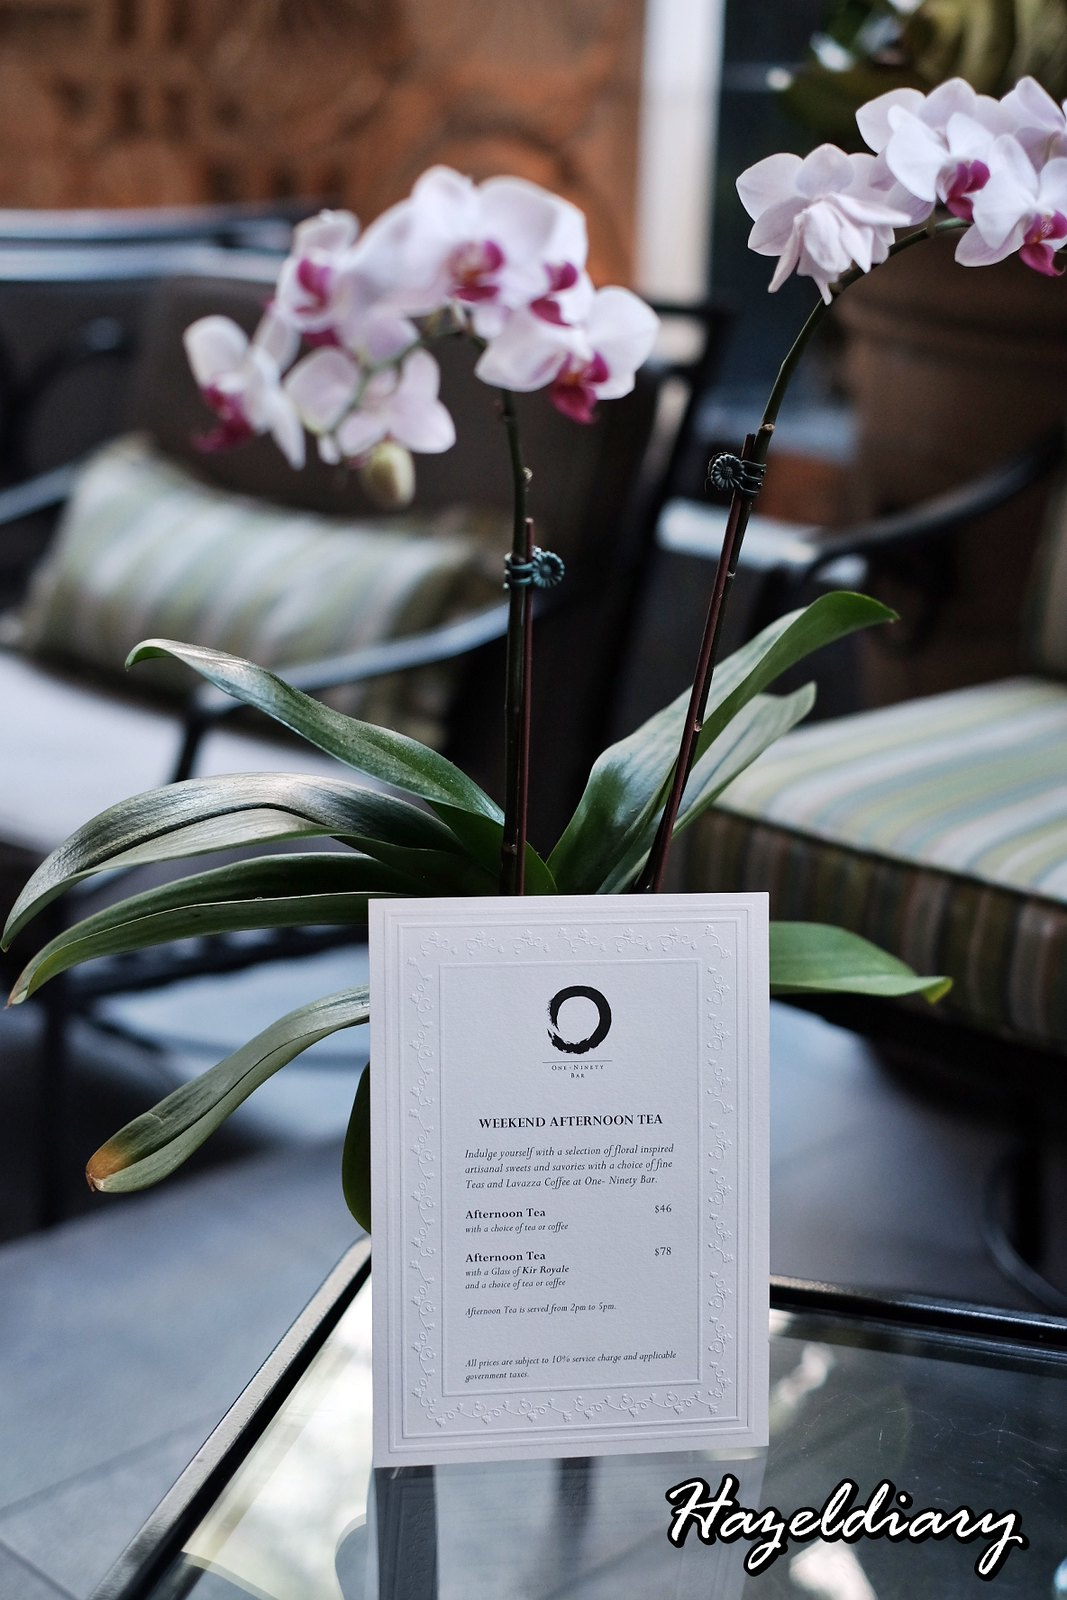 Floral Weekend High Tea-One Ninety Bar Four Seasons Hotel Singapore-6